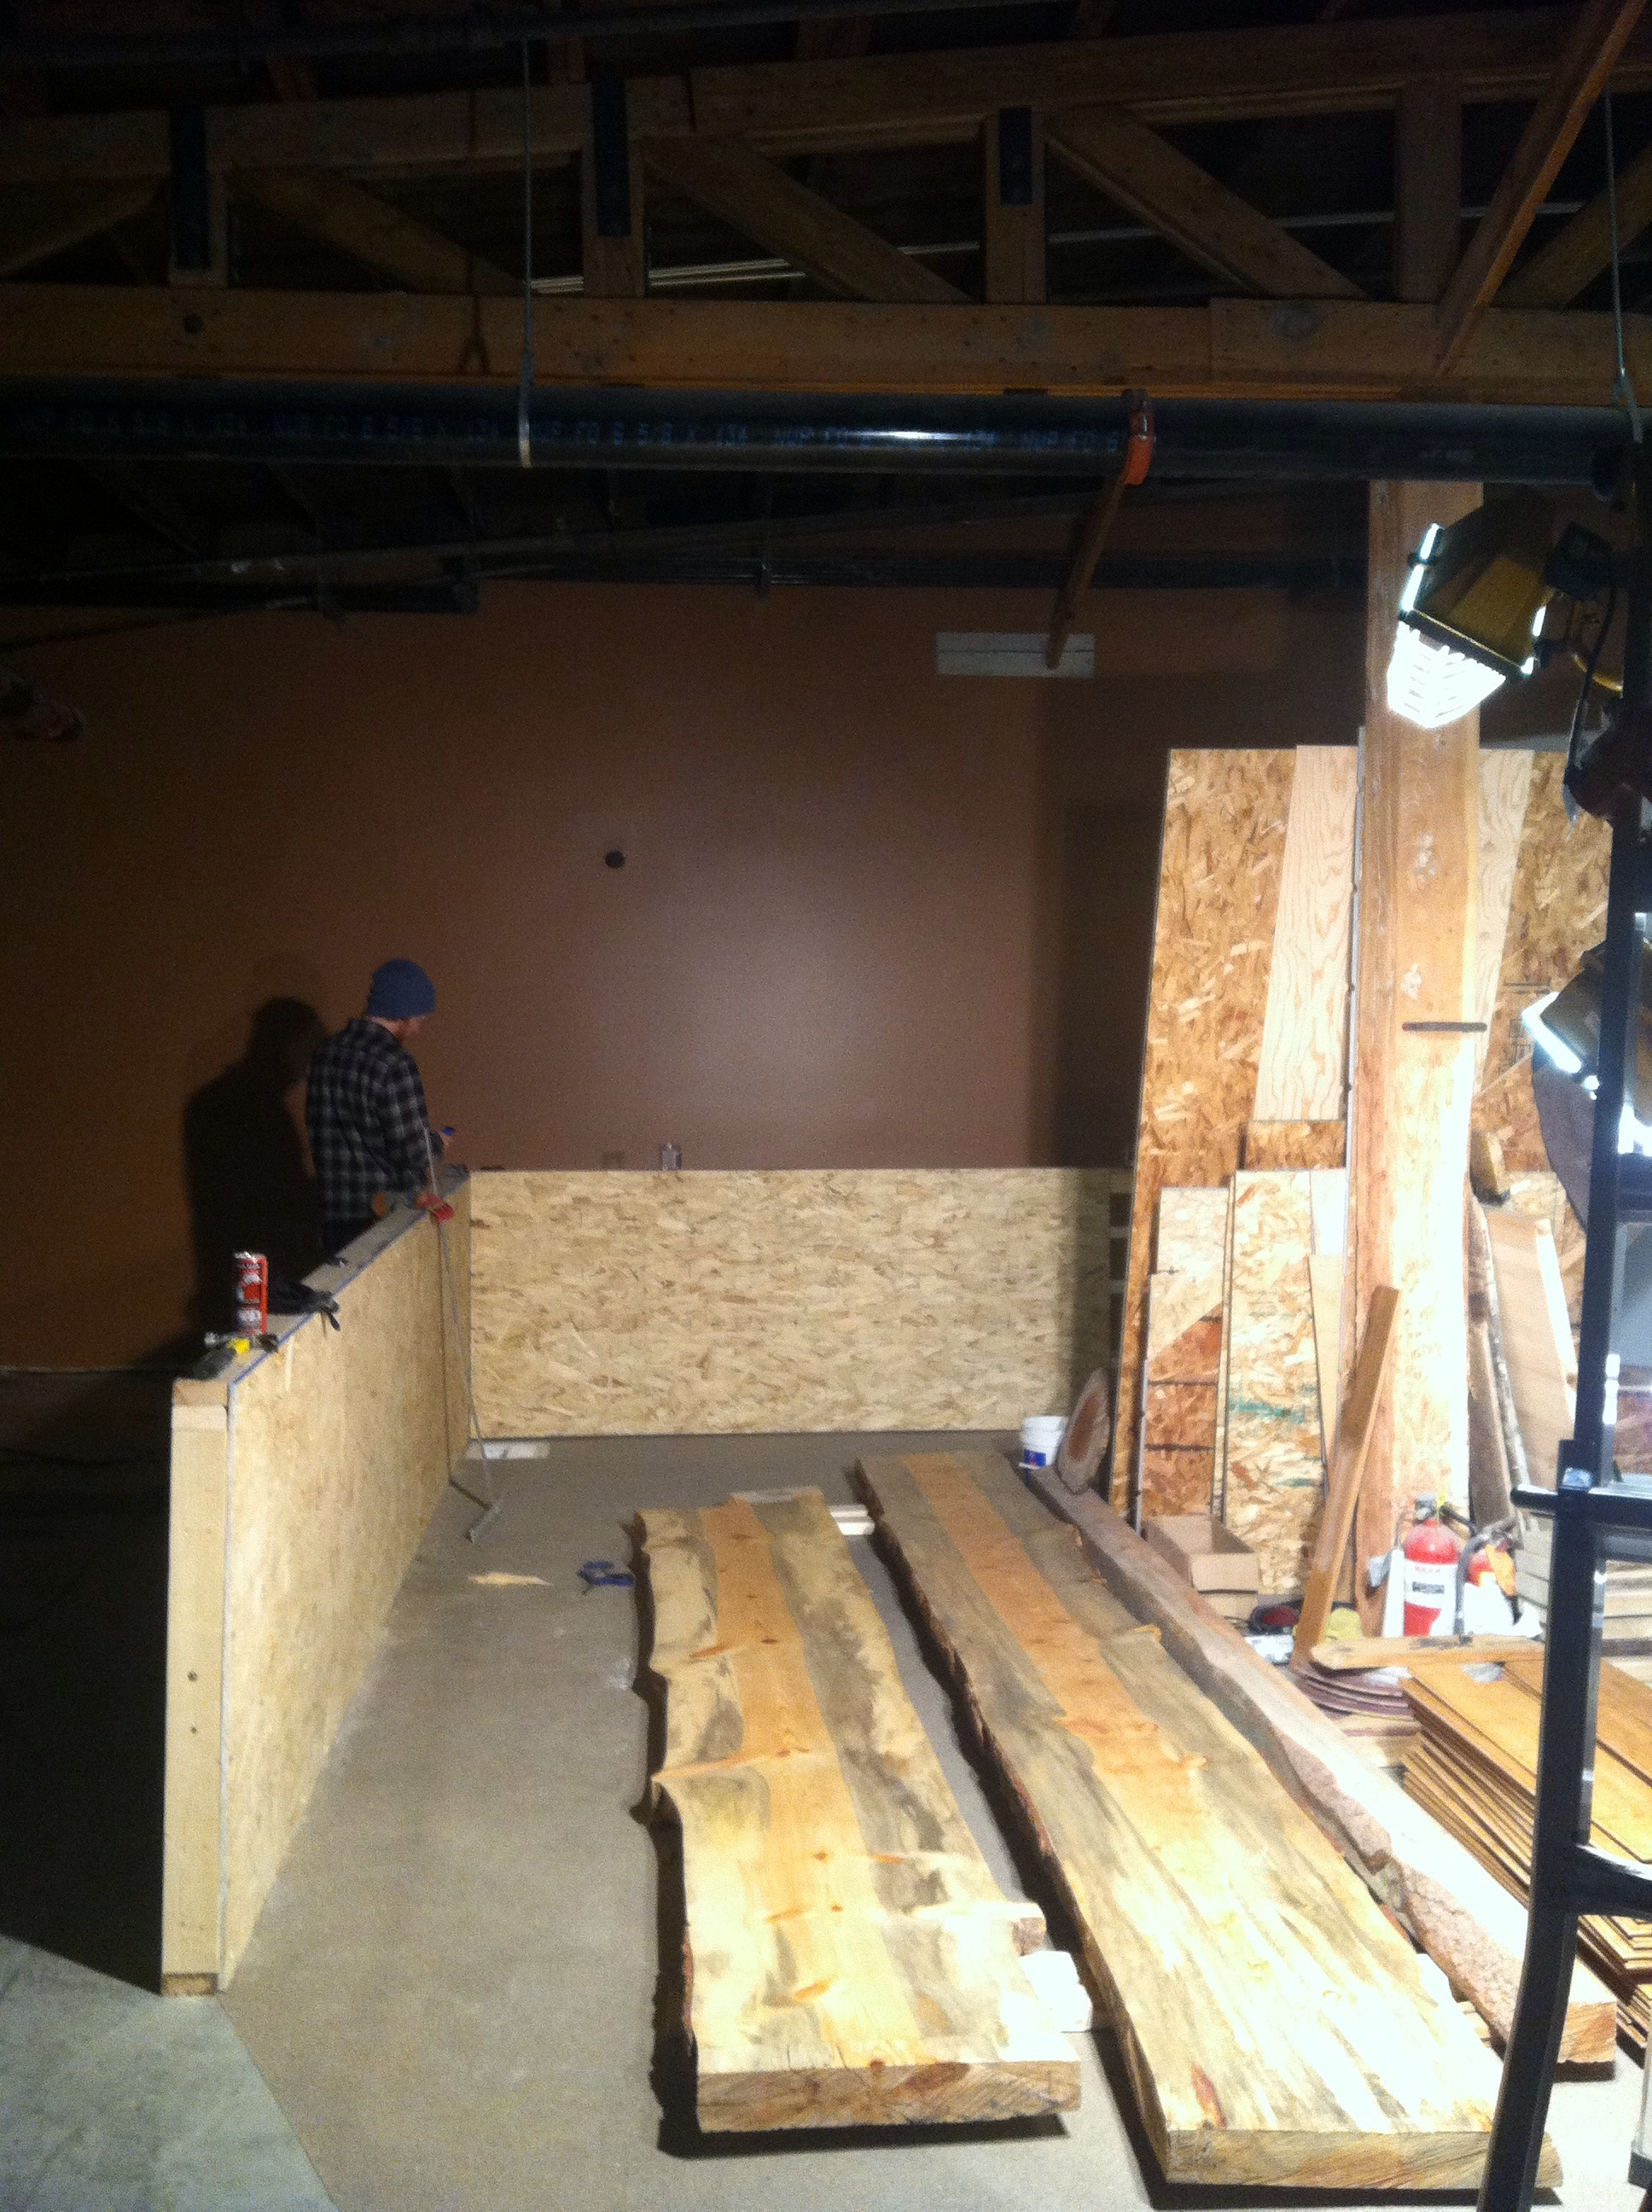 Oriented Strand Board (OSB) installed on backside of bar wall